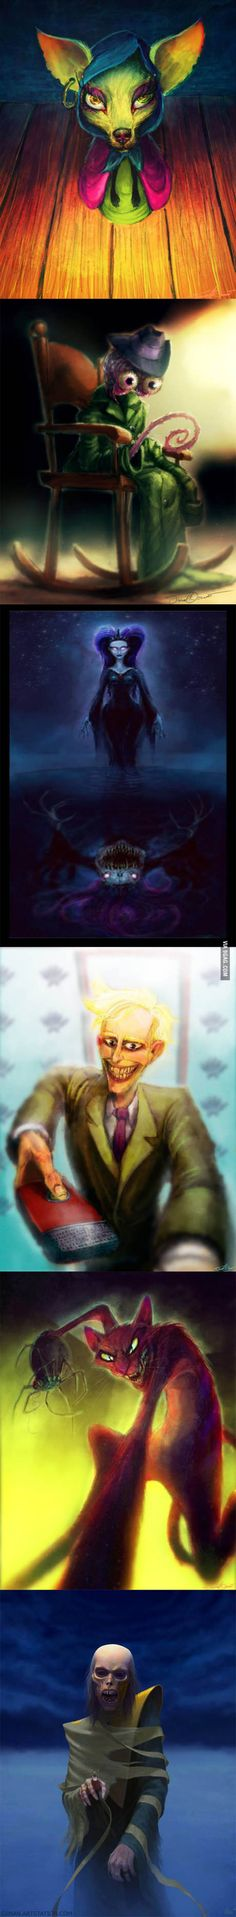 Courage the Cowardly Dog Villains realistic art.